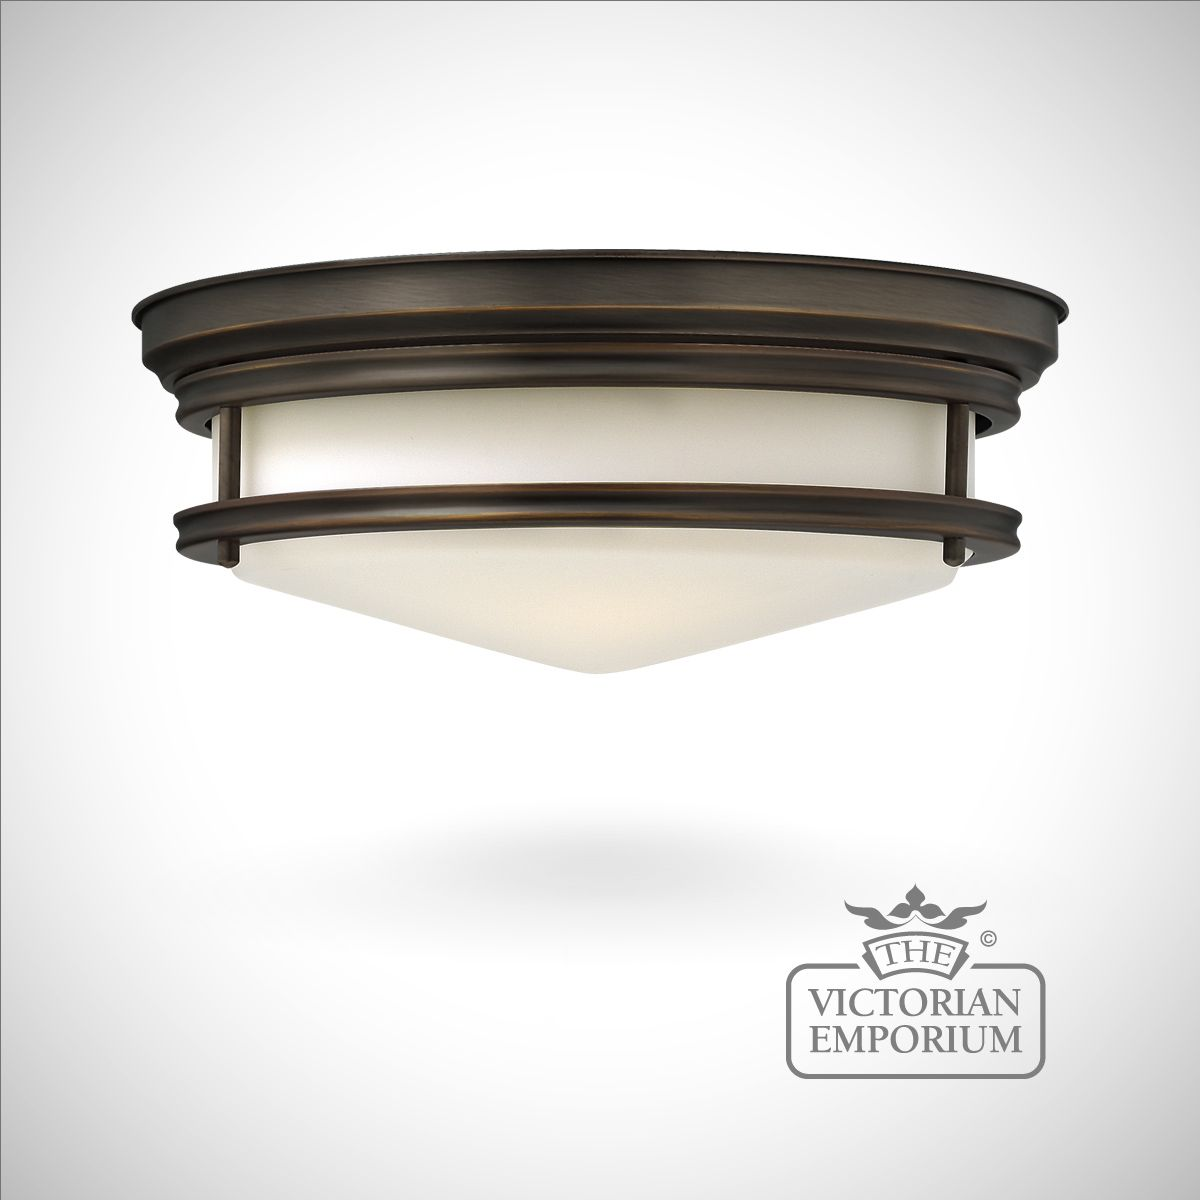 Flush Interior Wall Lights : Flush mount light available in 4 finishes Interior ceiling and hanging lights